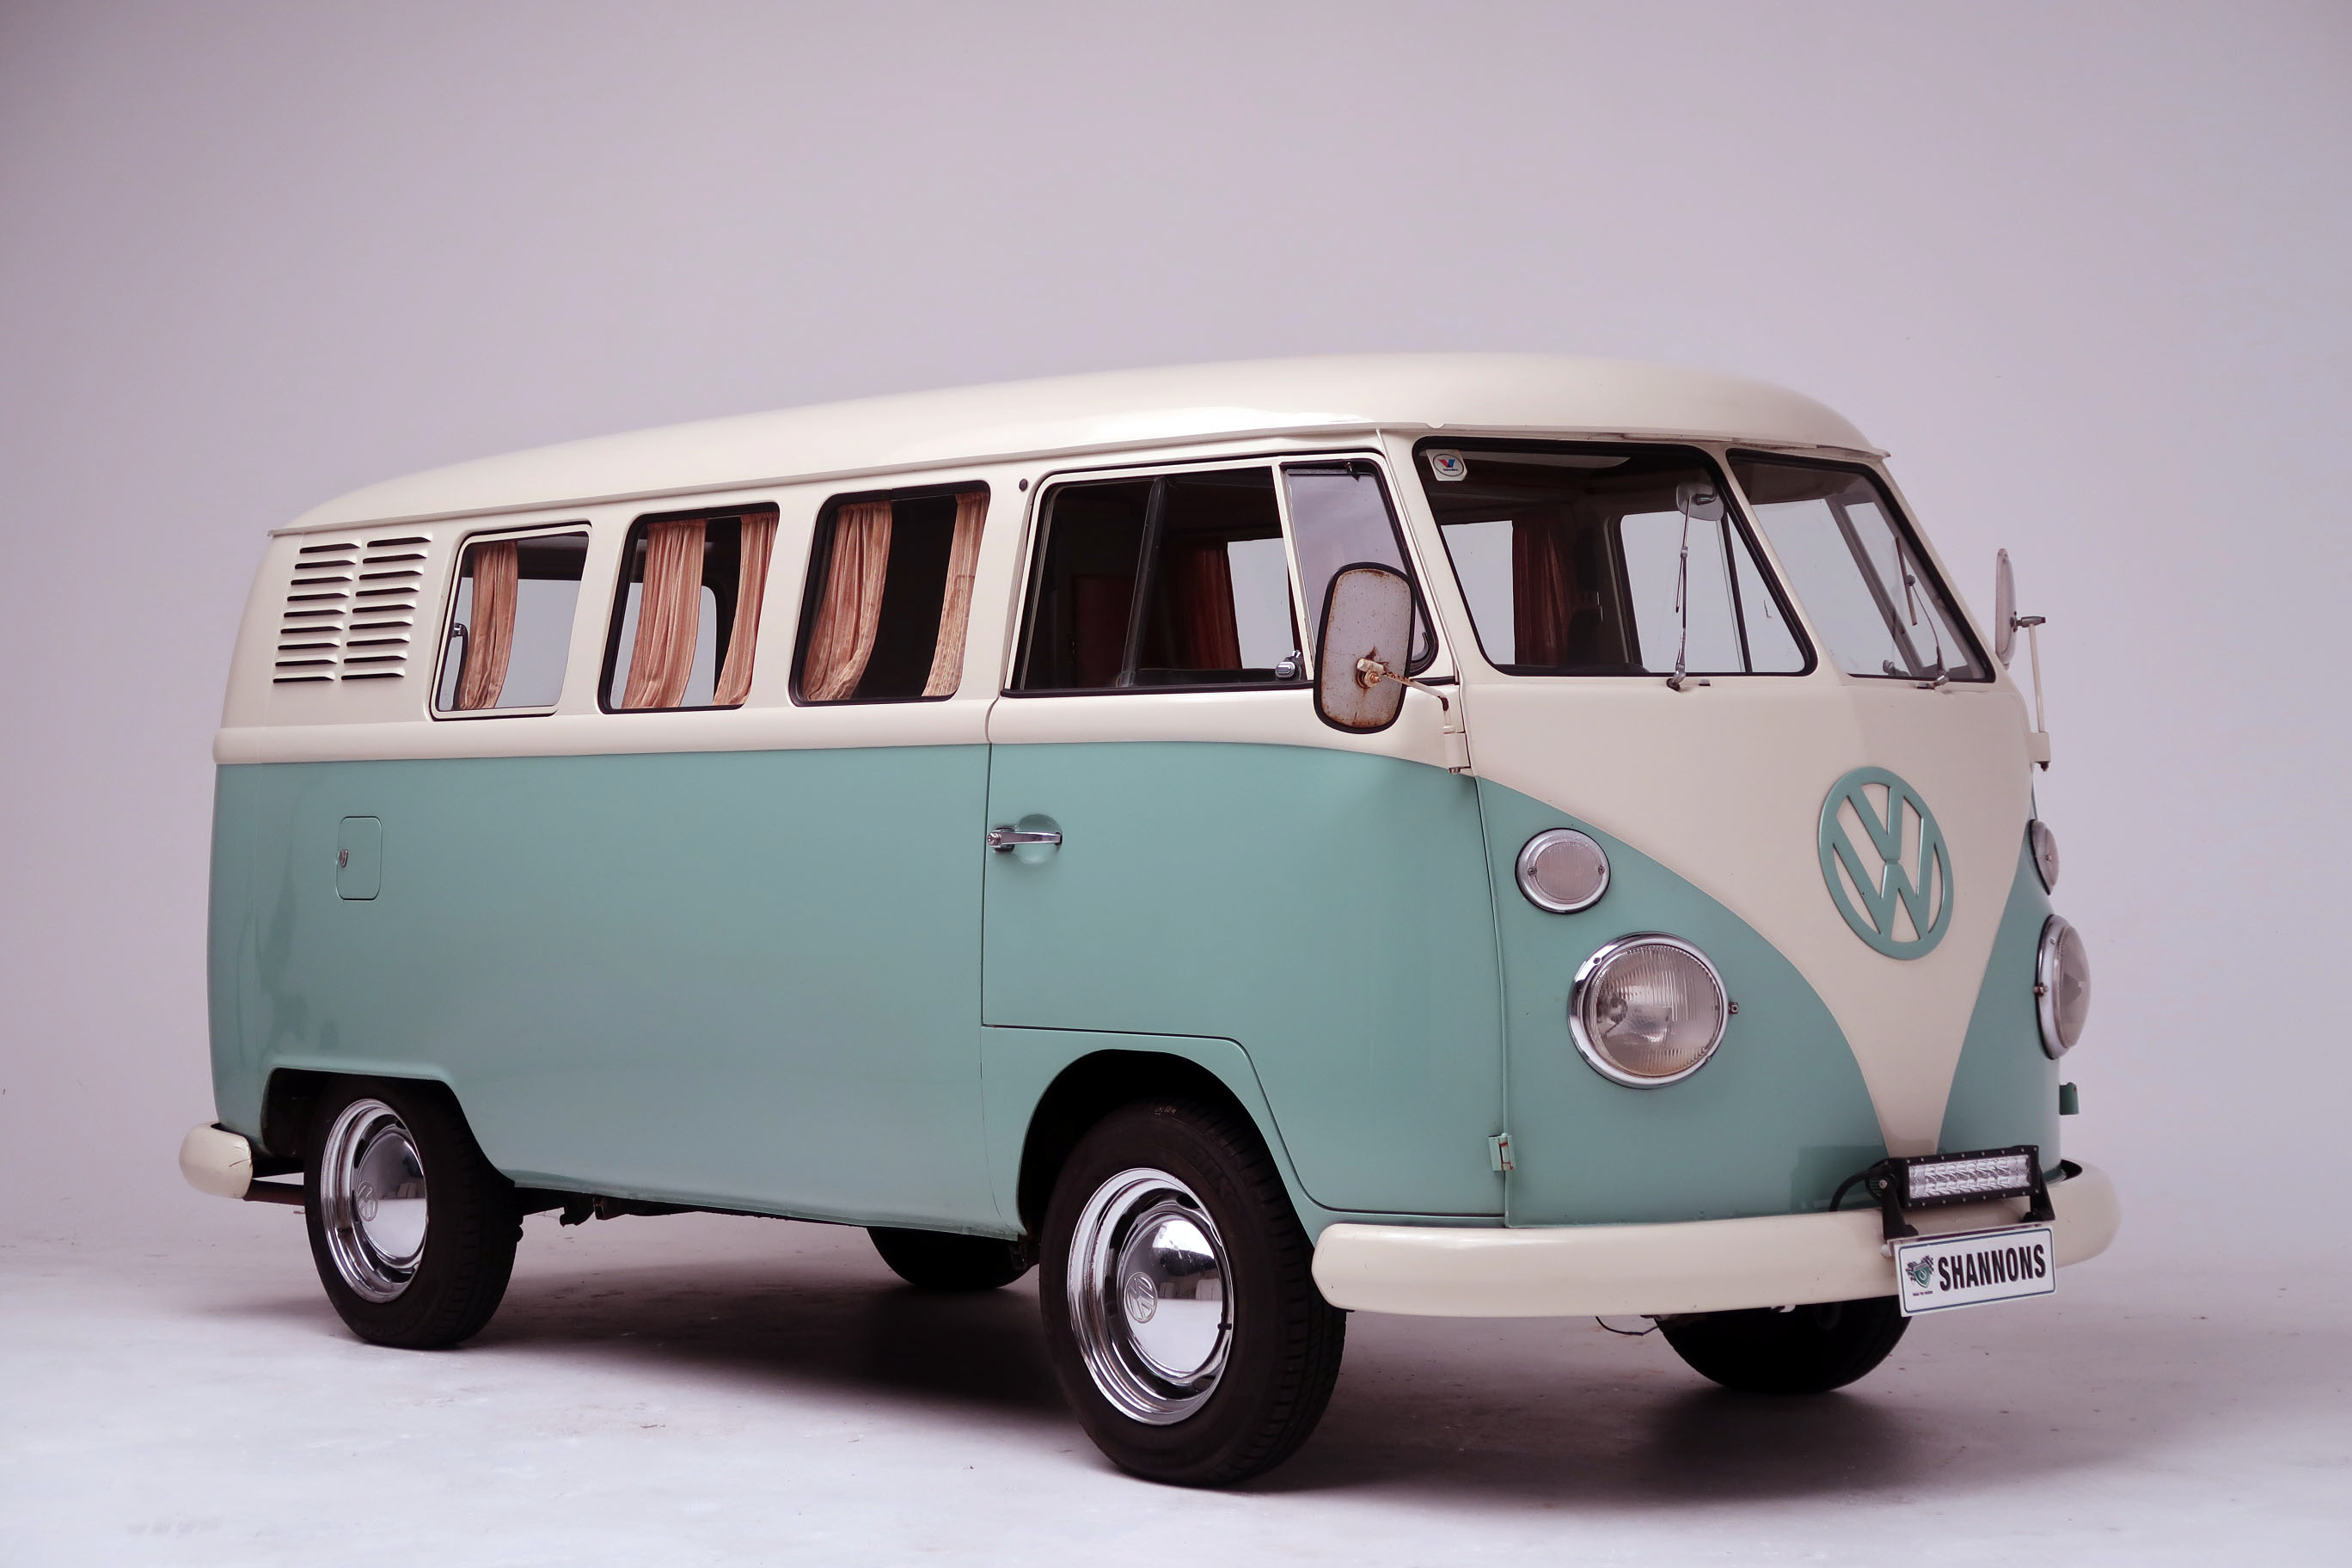 This Australian-delivered 1967 'Split Window' Kombi with a period camper conversion that is understood to have had just two owners from new, offers its new owner plenty of possibilities at its guiding range of $50,000-$60,000 at Shannons Online Auction.